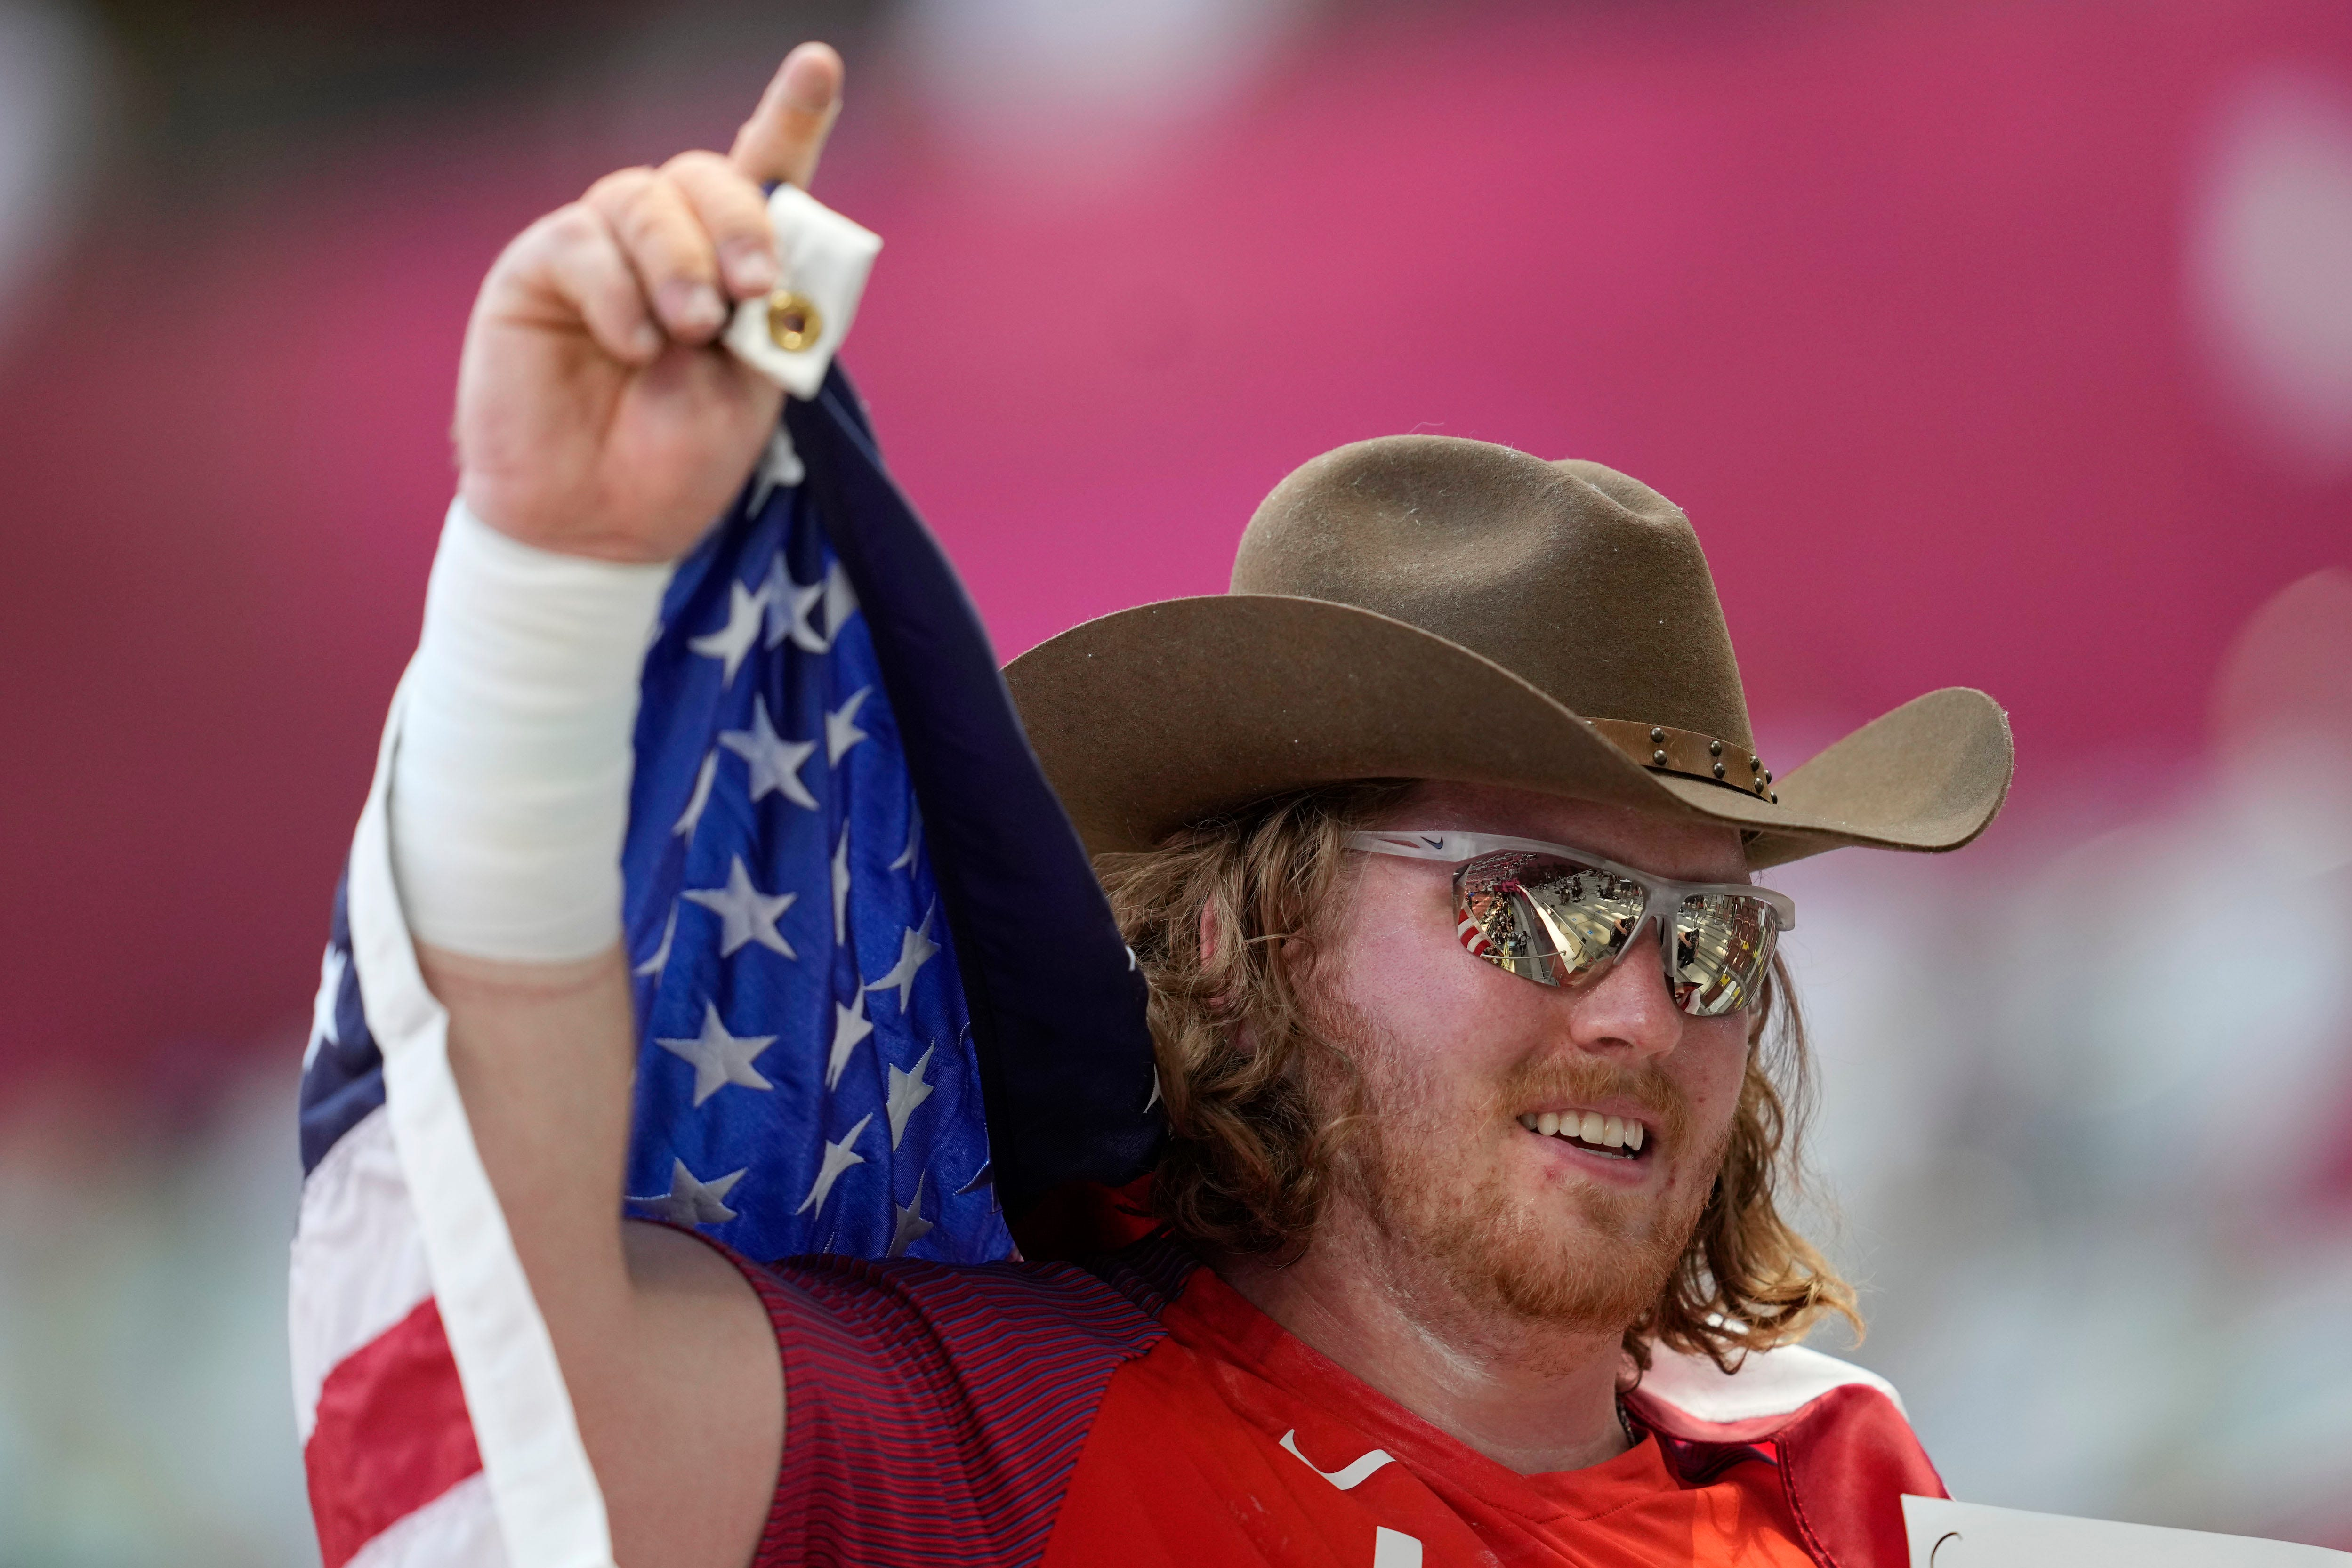 American Ryan Crouser sets Olympic shot put record three times to win gold; US takes silver, too